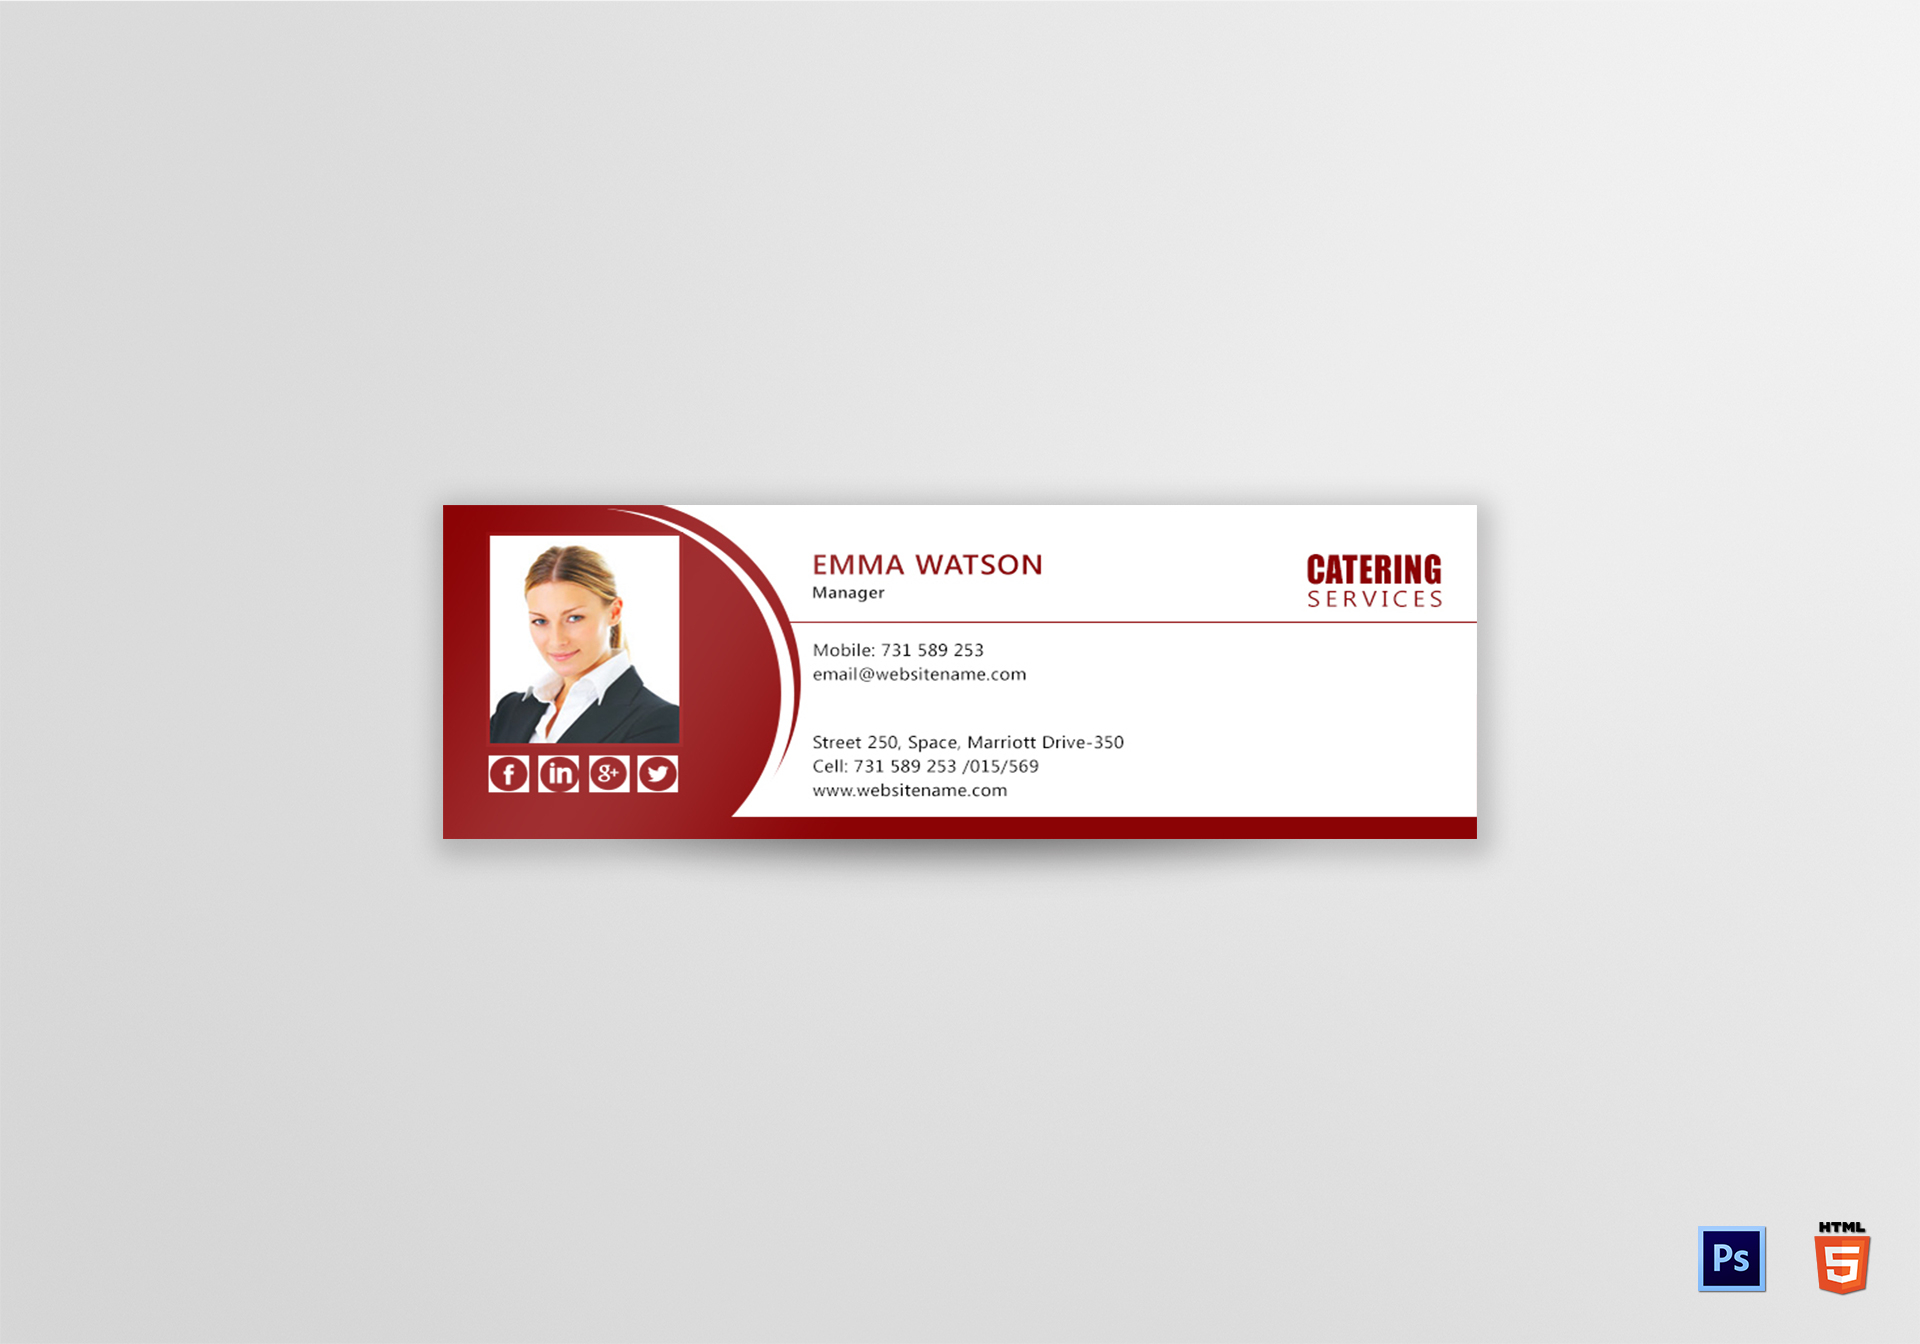 Catering Services Email Signature Template